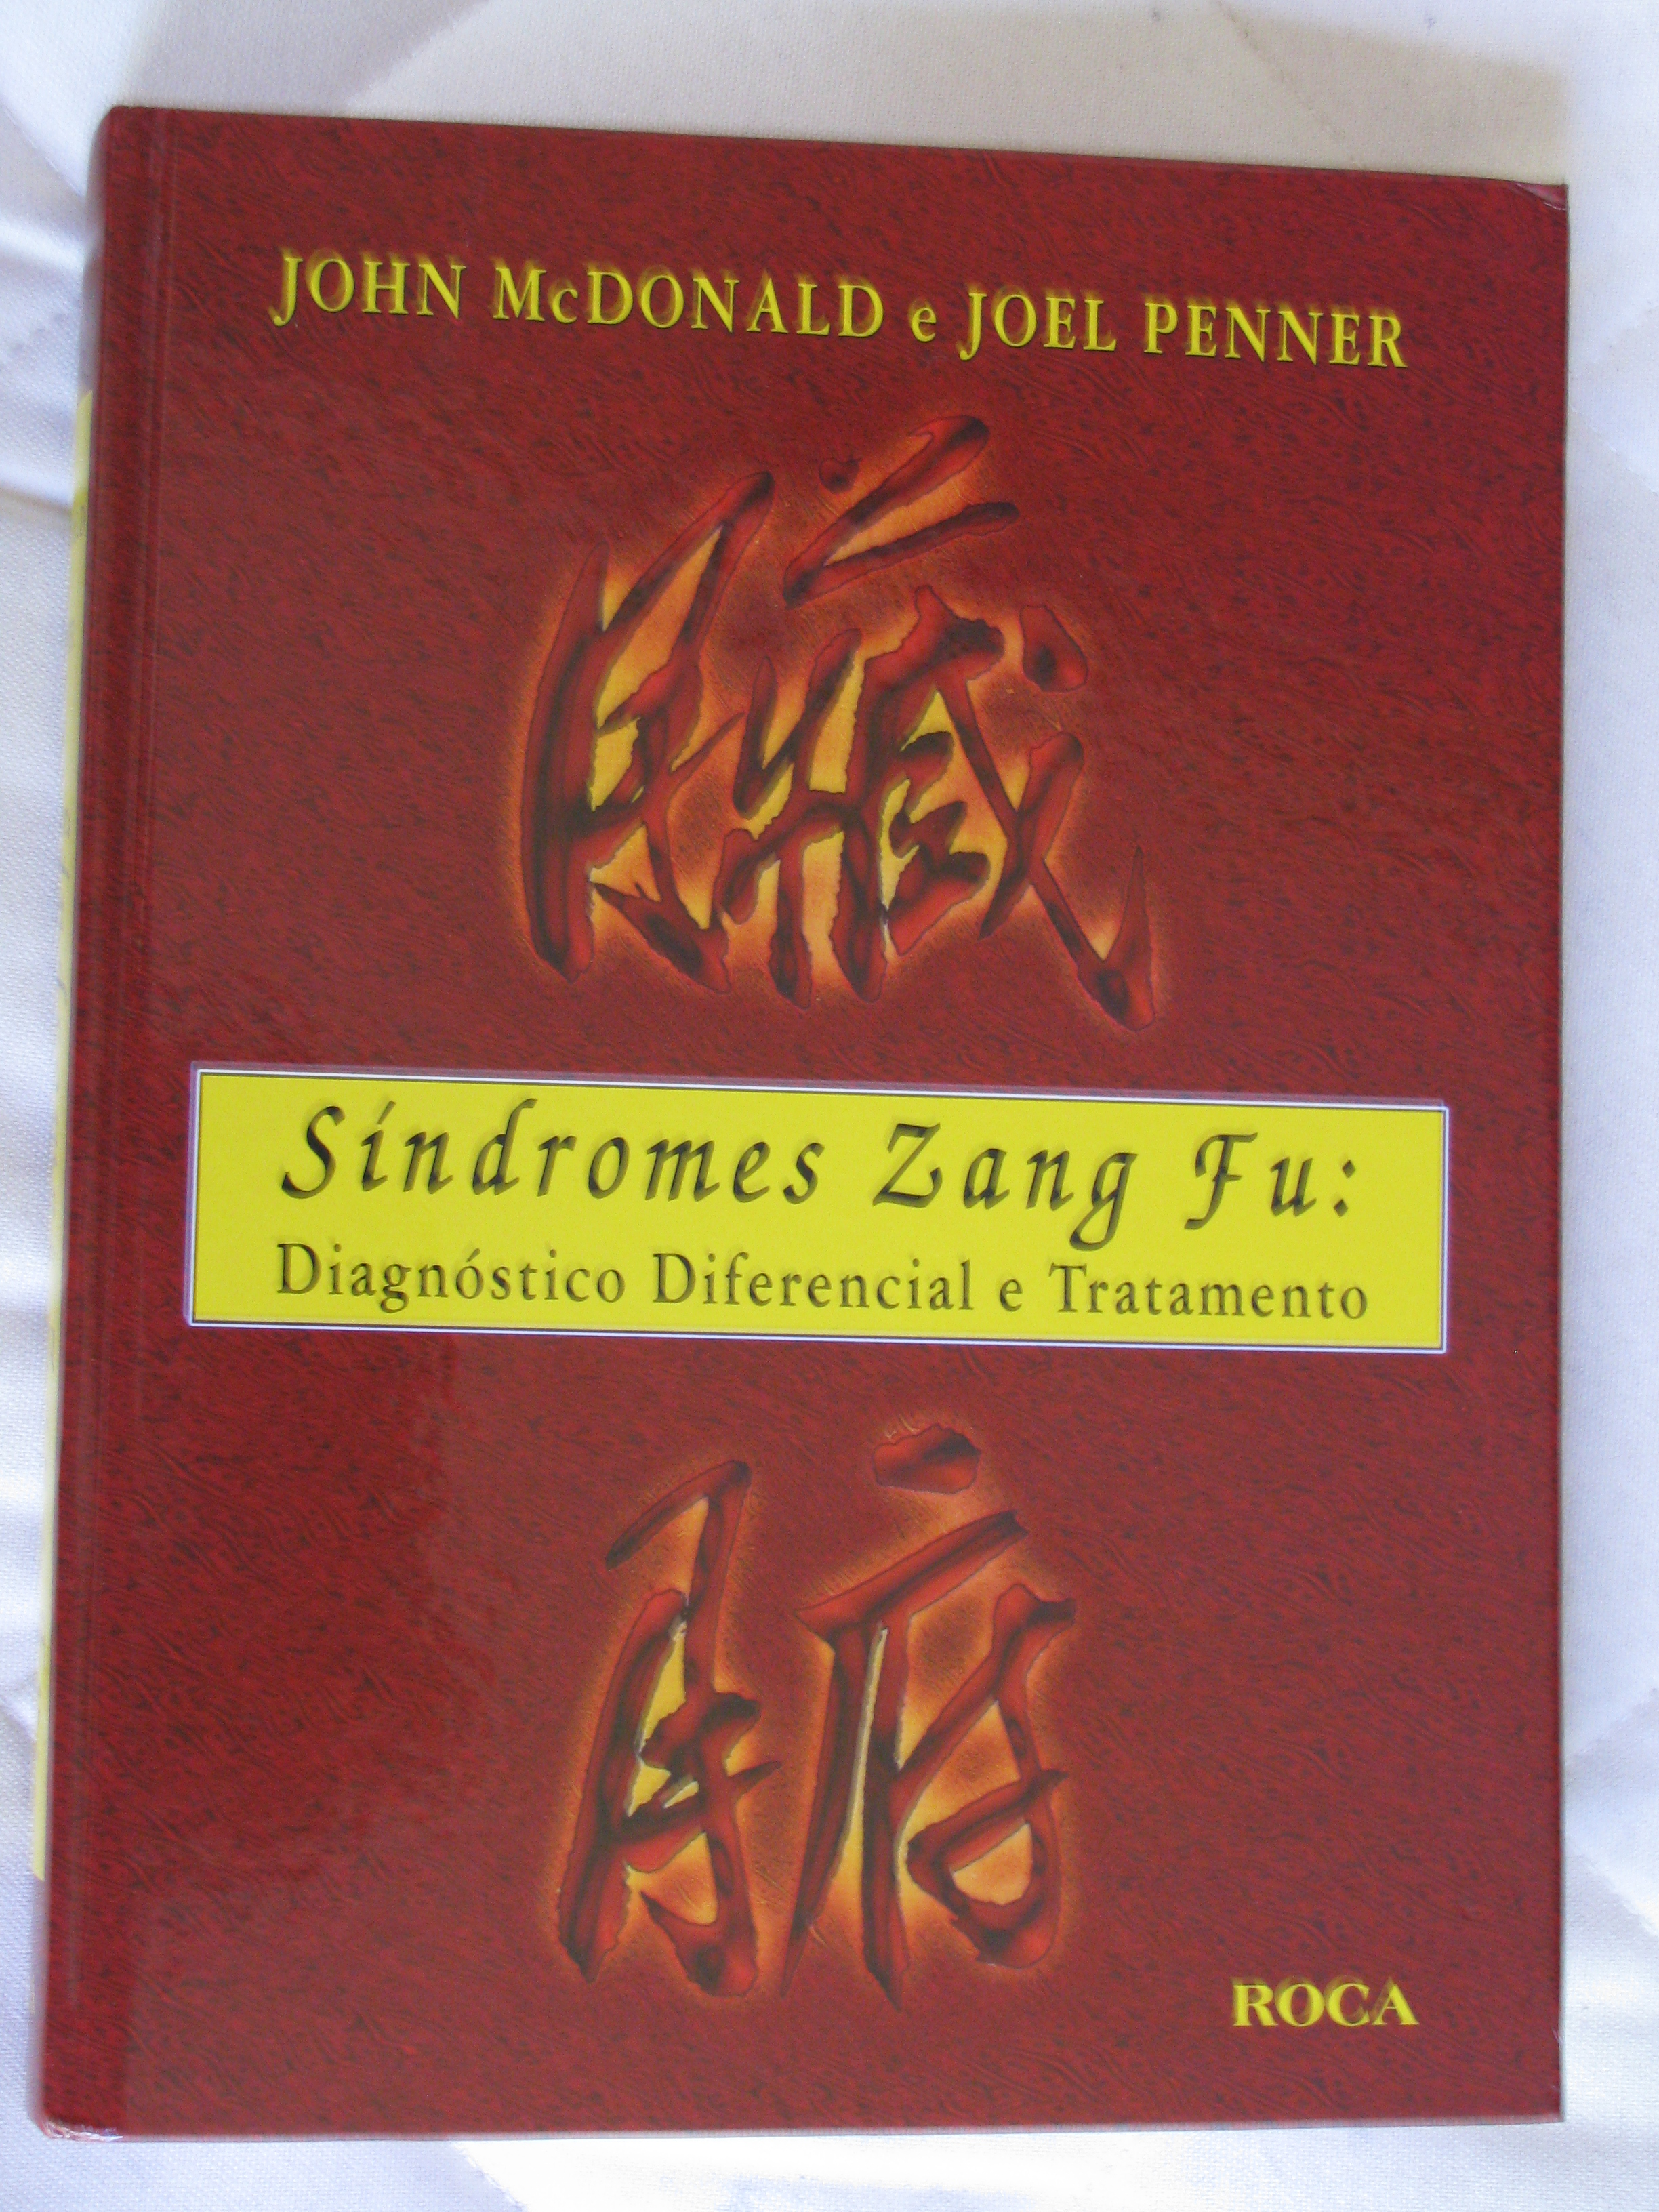 Portuguese edition of Zang Fu Syndromes published in Brazil